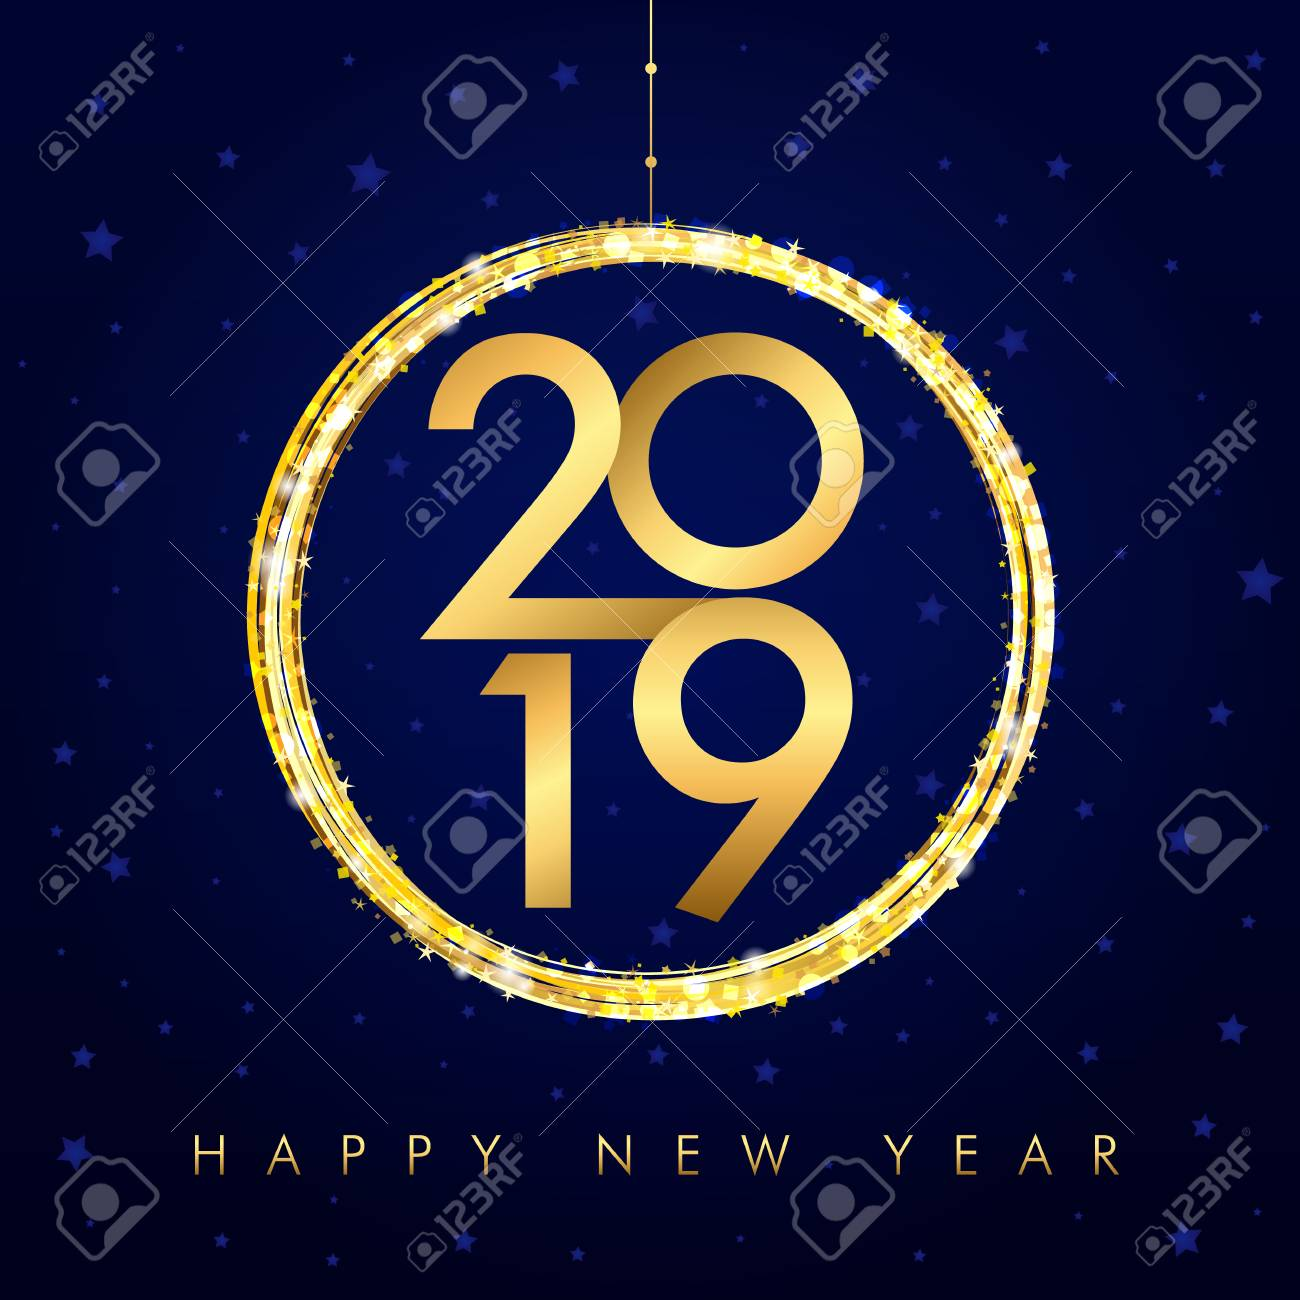 happy new year background with golden ball and glitter gold number 2019 and text happy